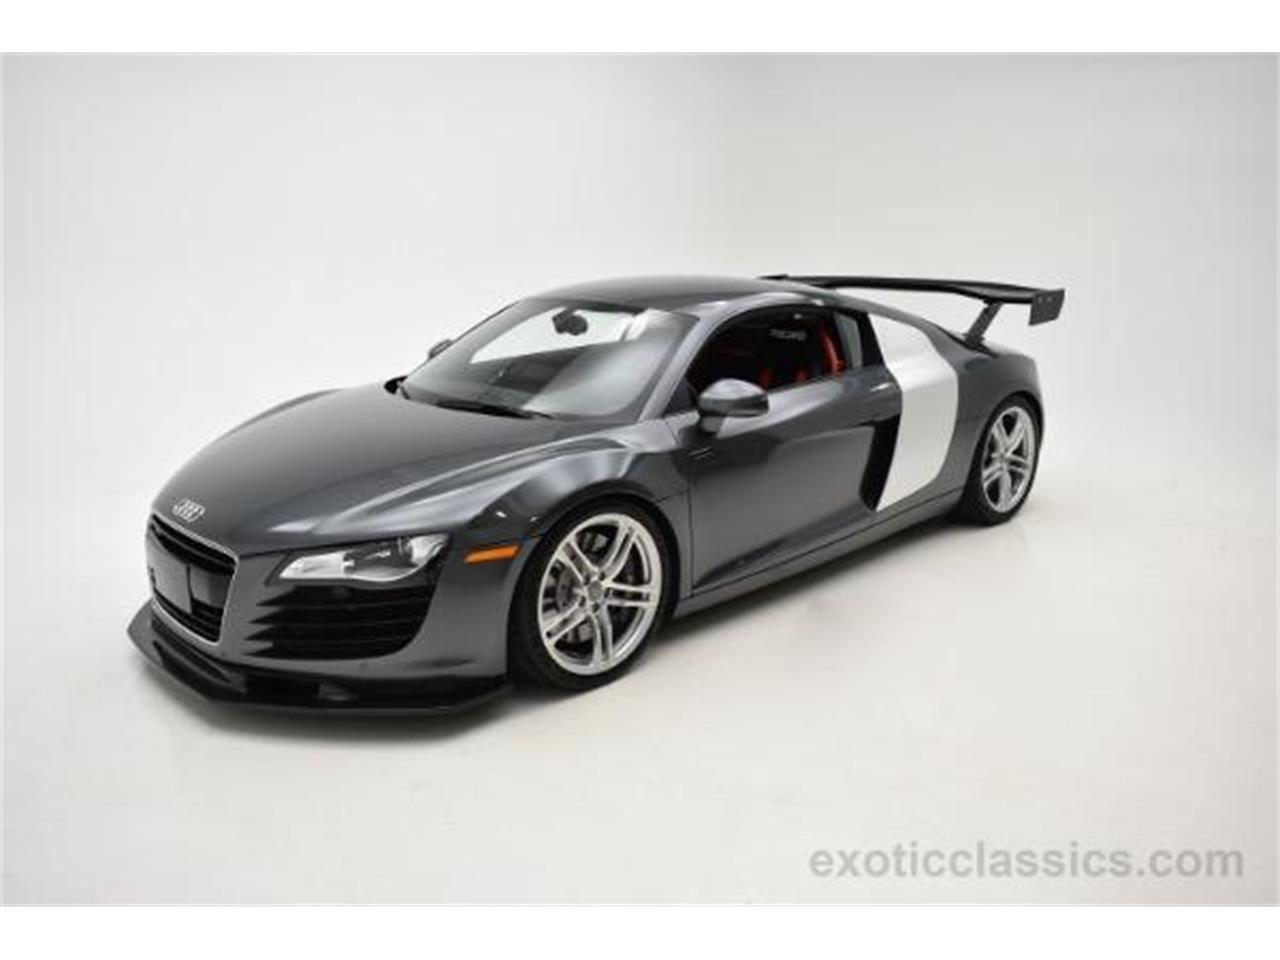 Large Picture of 2009 Audi R8 located in New York - $84,888.00 - KO6N